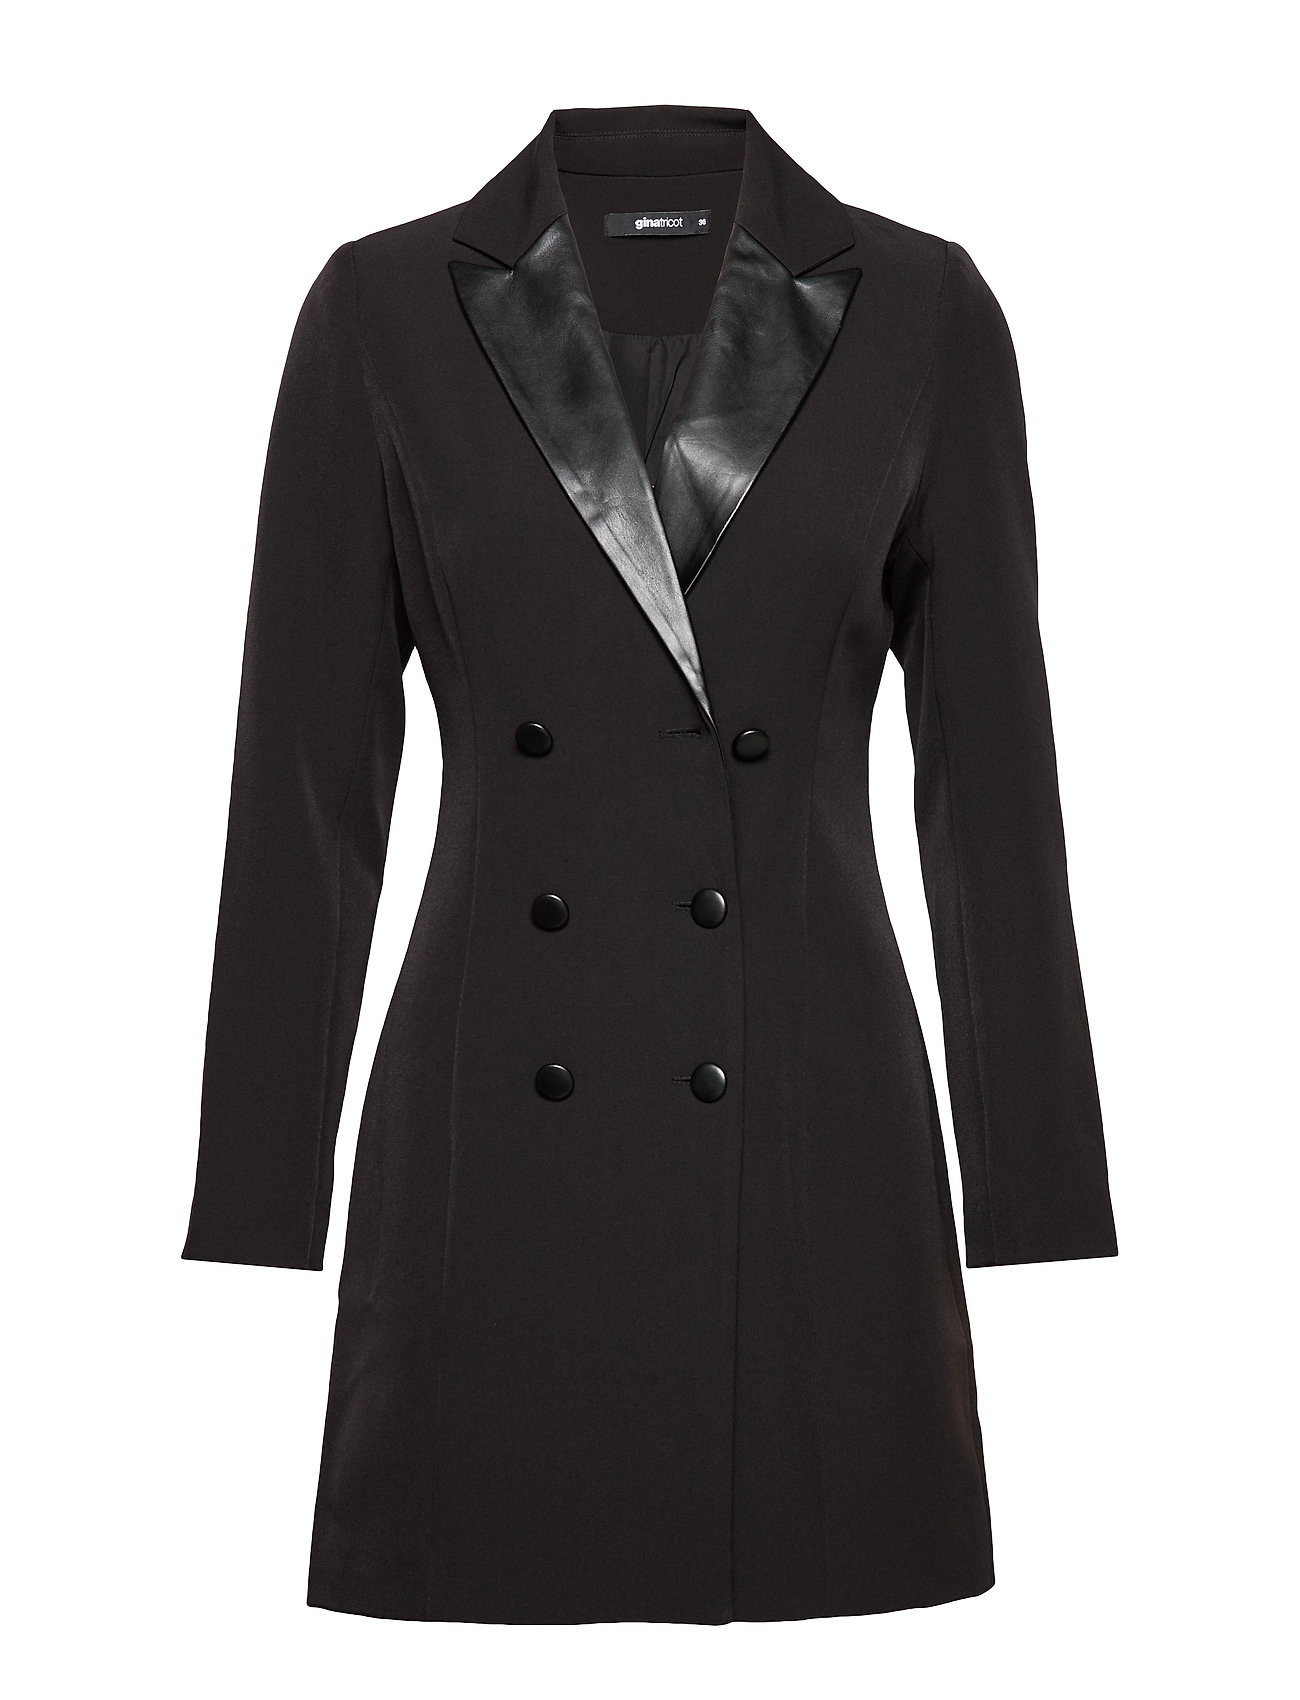 Gina Tricot Sanna blazer dress - BLACK